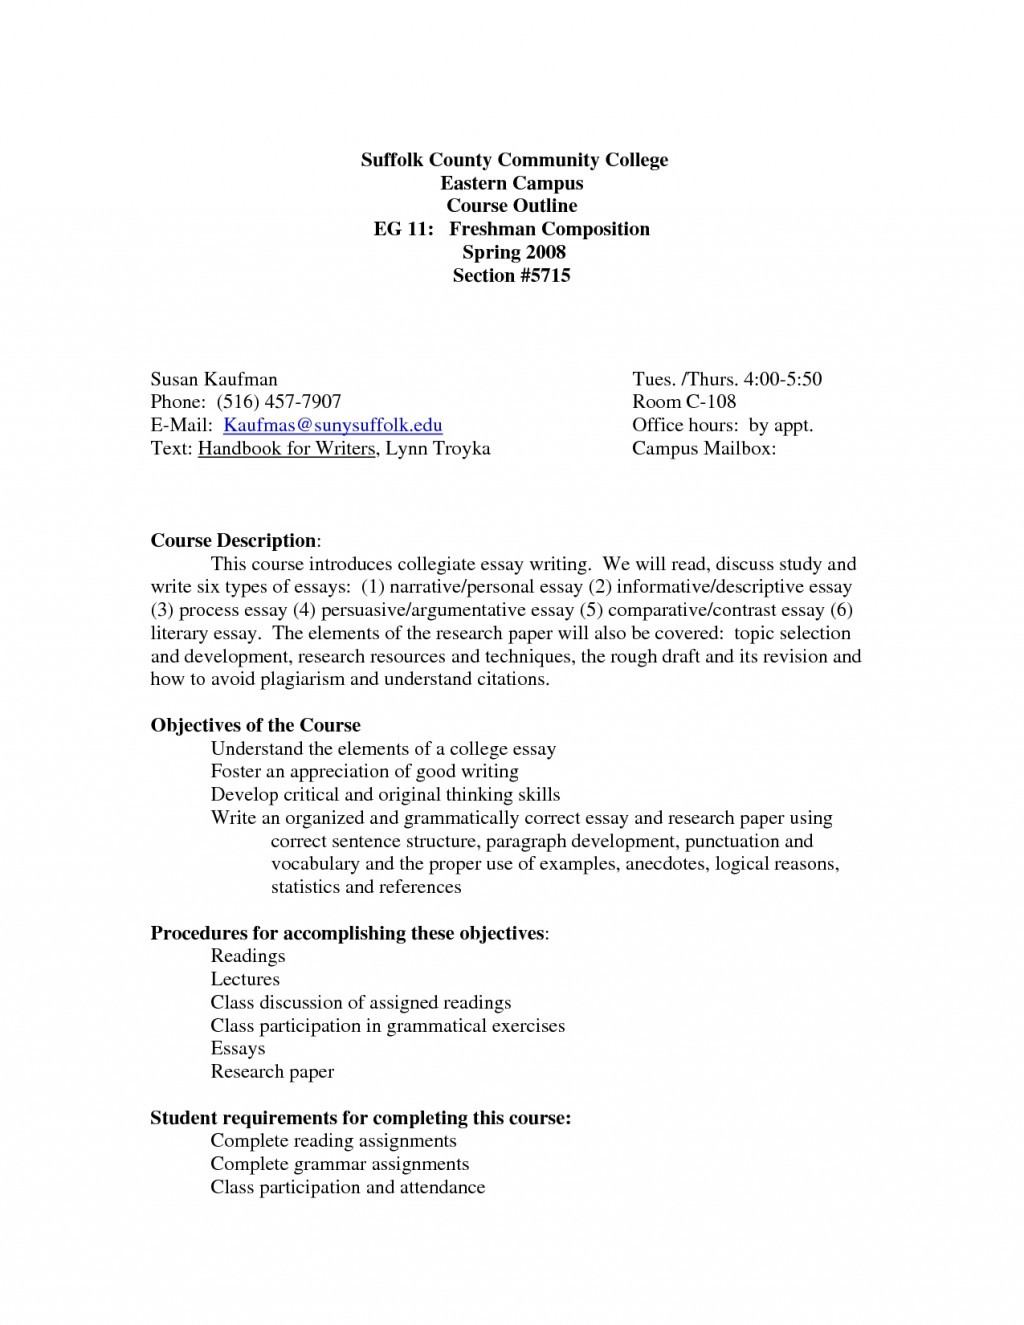 014 College Essay Requirements Best Photos Of Outline Template Writing Within Format Outstanding Board 2017 Boston Sat Requirement Large